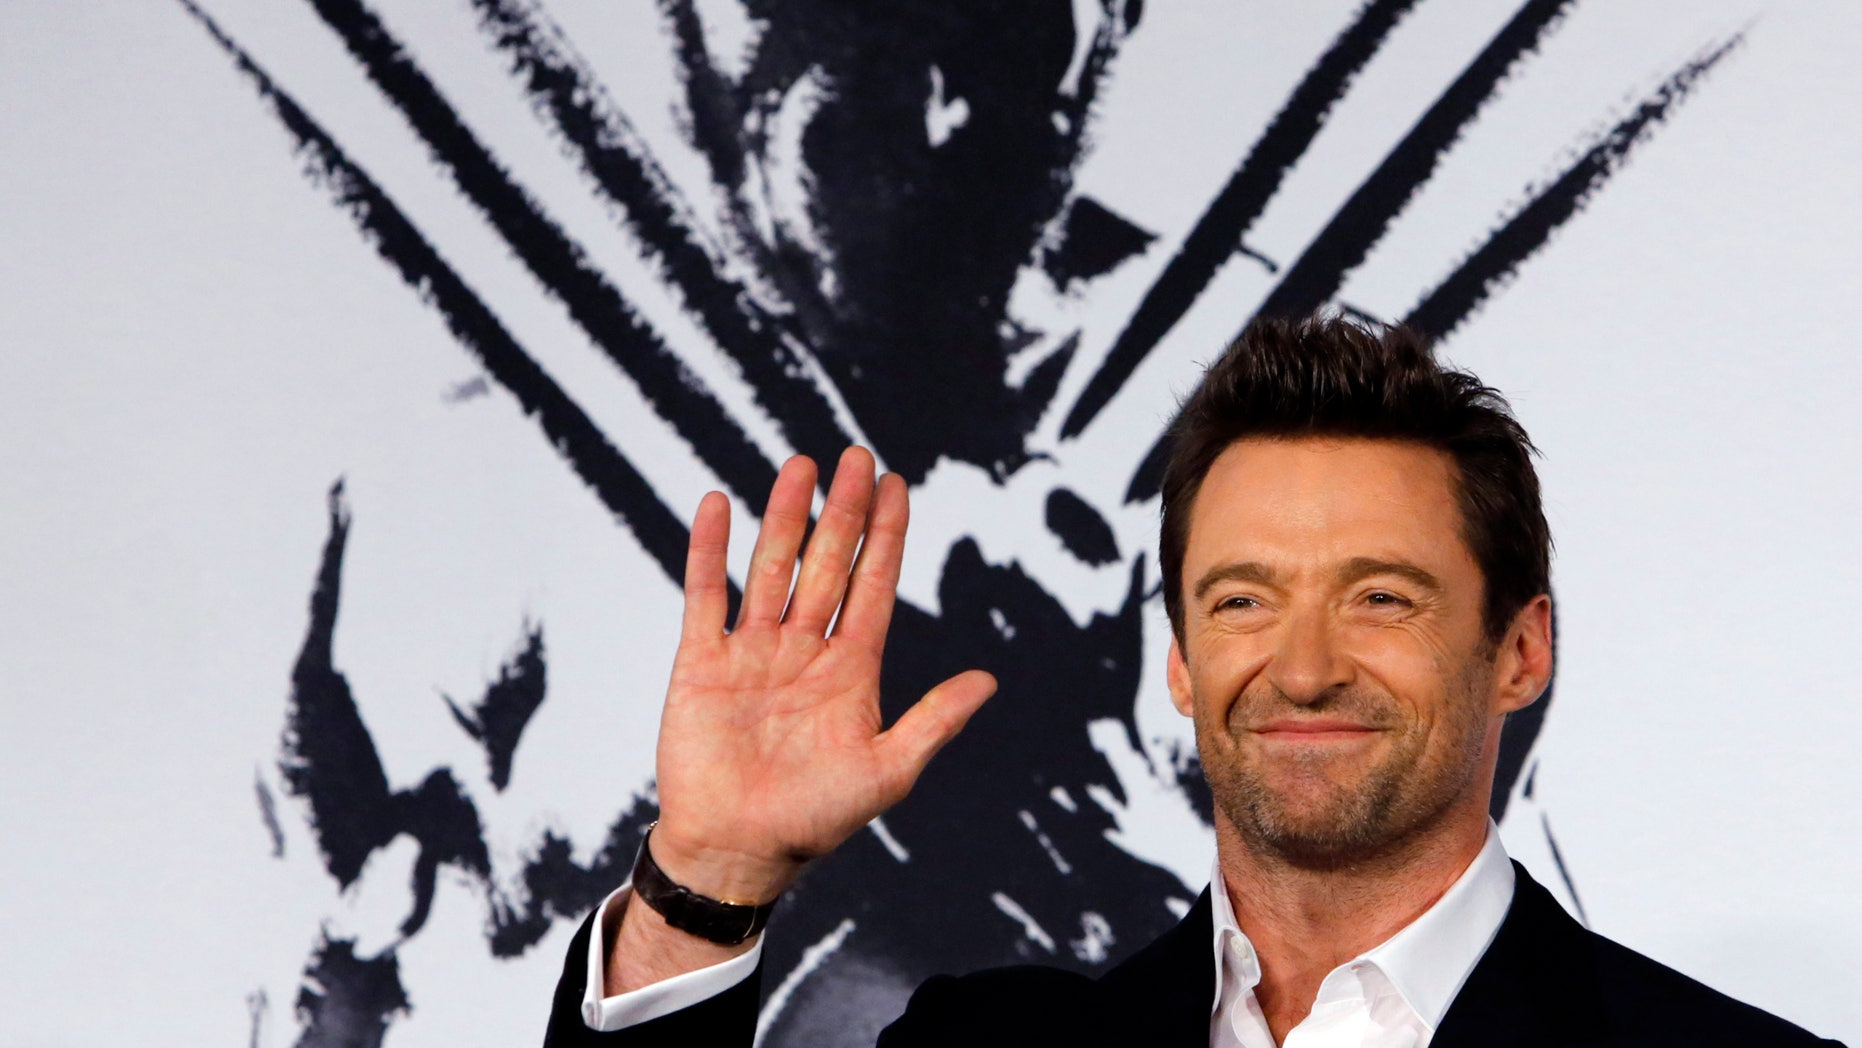 """August 28, 2013. Hugh Jackman waves to fans as he attends the Japan premiere of his movie """"The Wolverine"""" in Tokyo."""